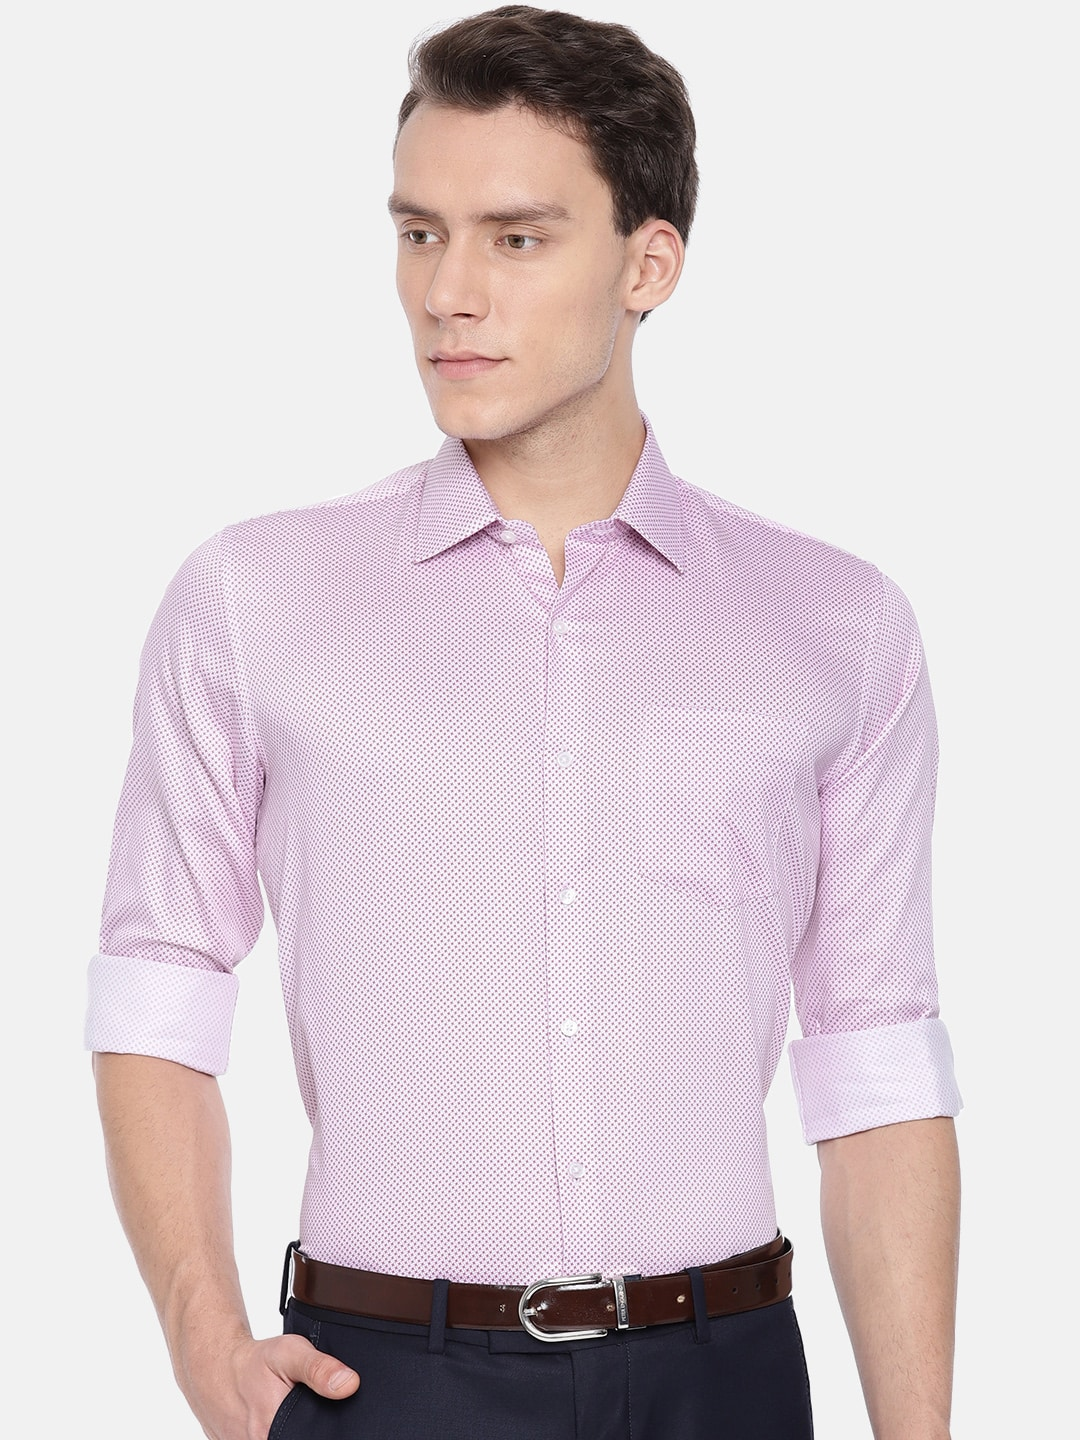 db11b9b4a2f Van Heusen Printed Shirts - Buy Van Heusen Printed Shirts online in India